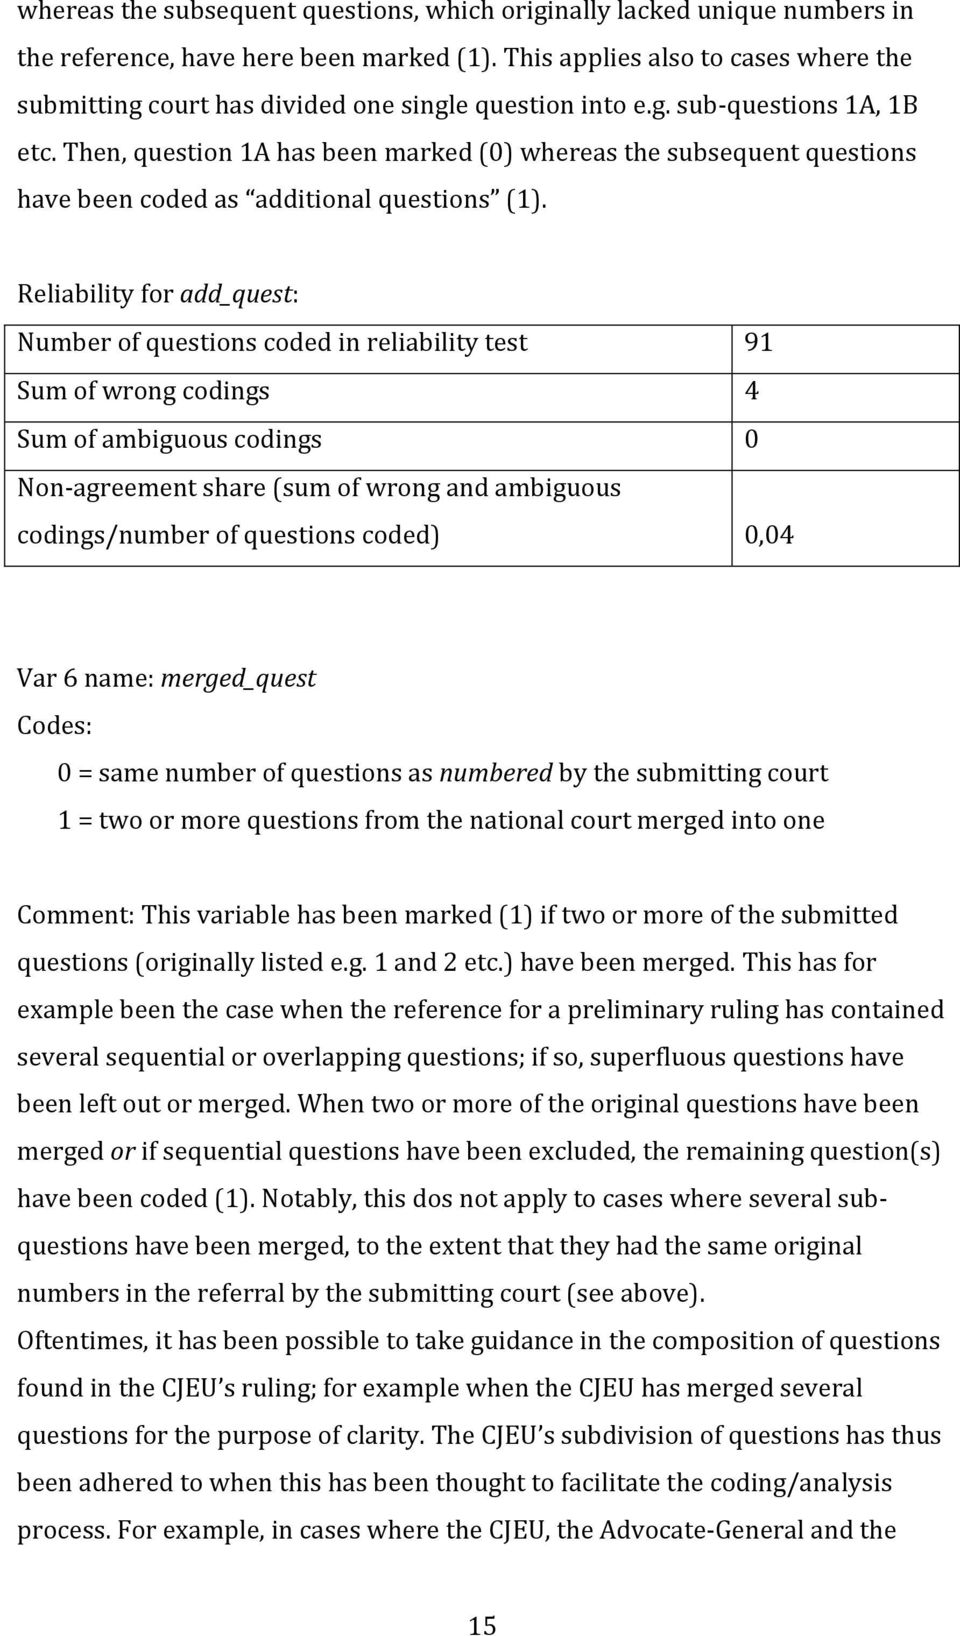 Then, question 1A has been marked (0) whereas the subsequent questions have been coded as additional questions (1).